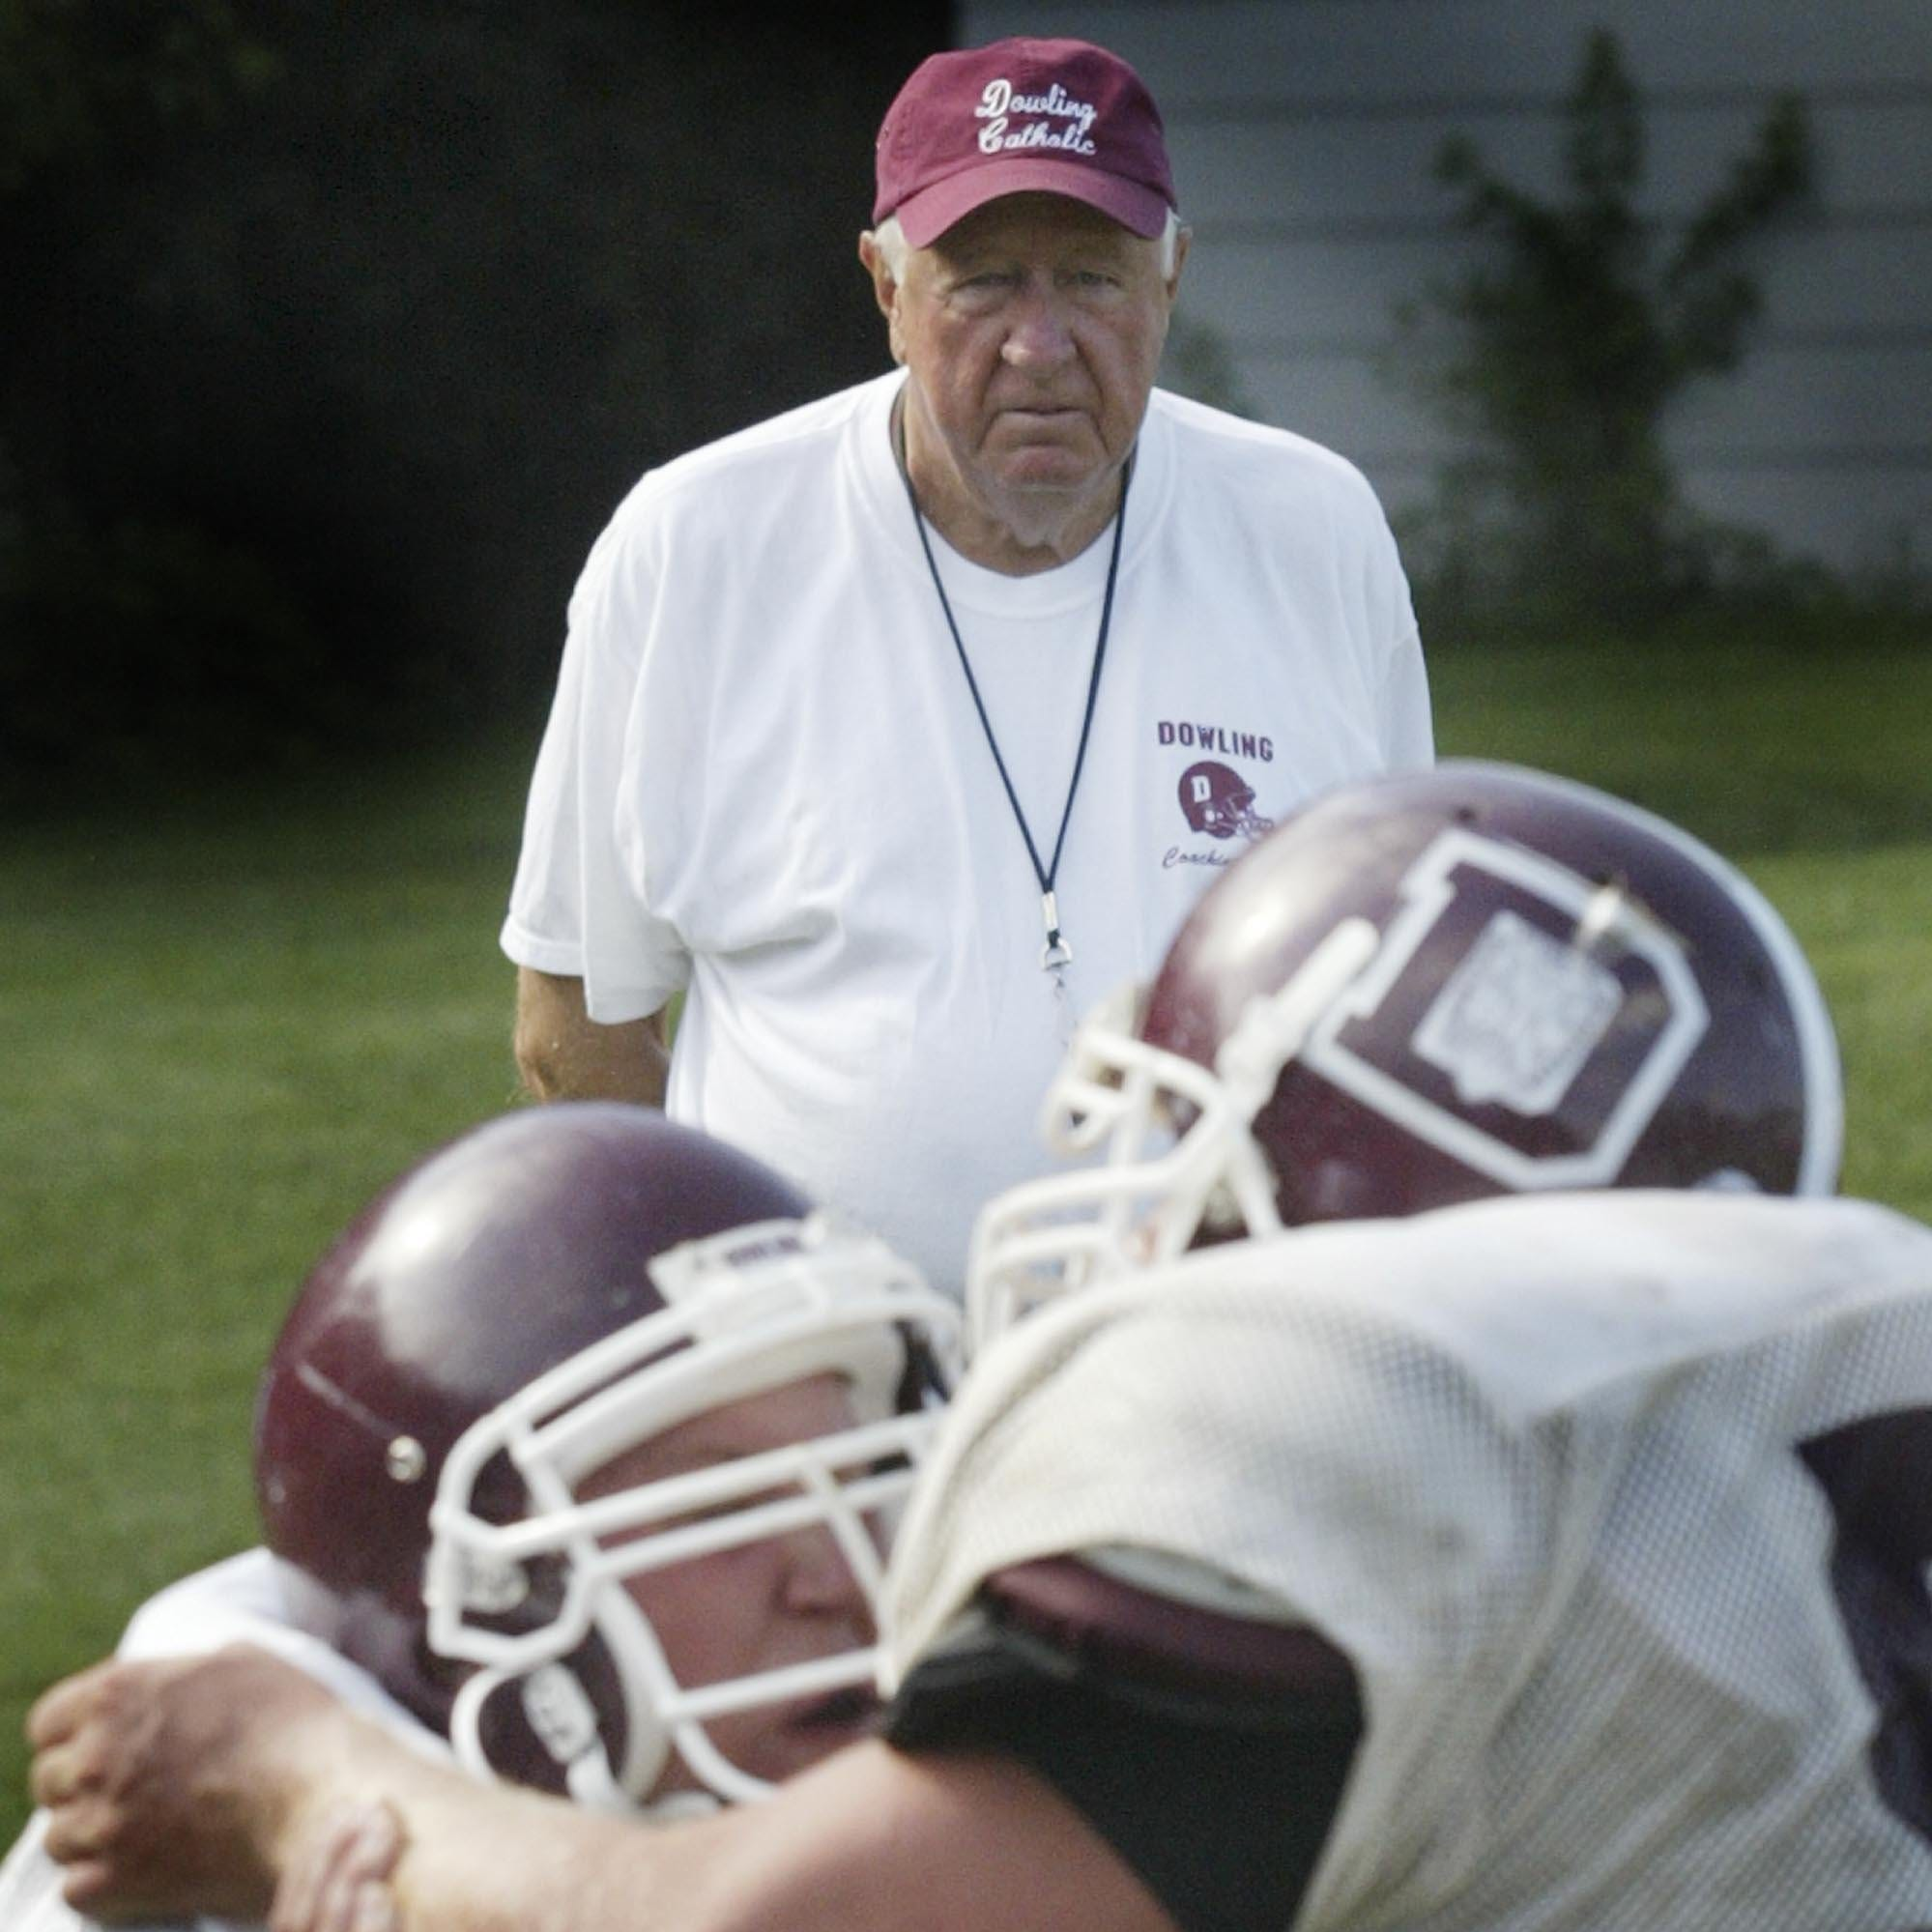 As Dowling Catholic plays for another state title, coaching legend Jim Williams reflects on his career